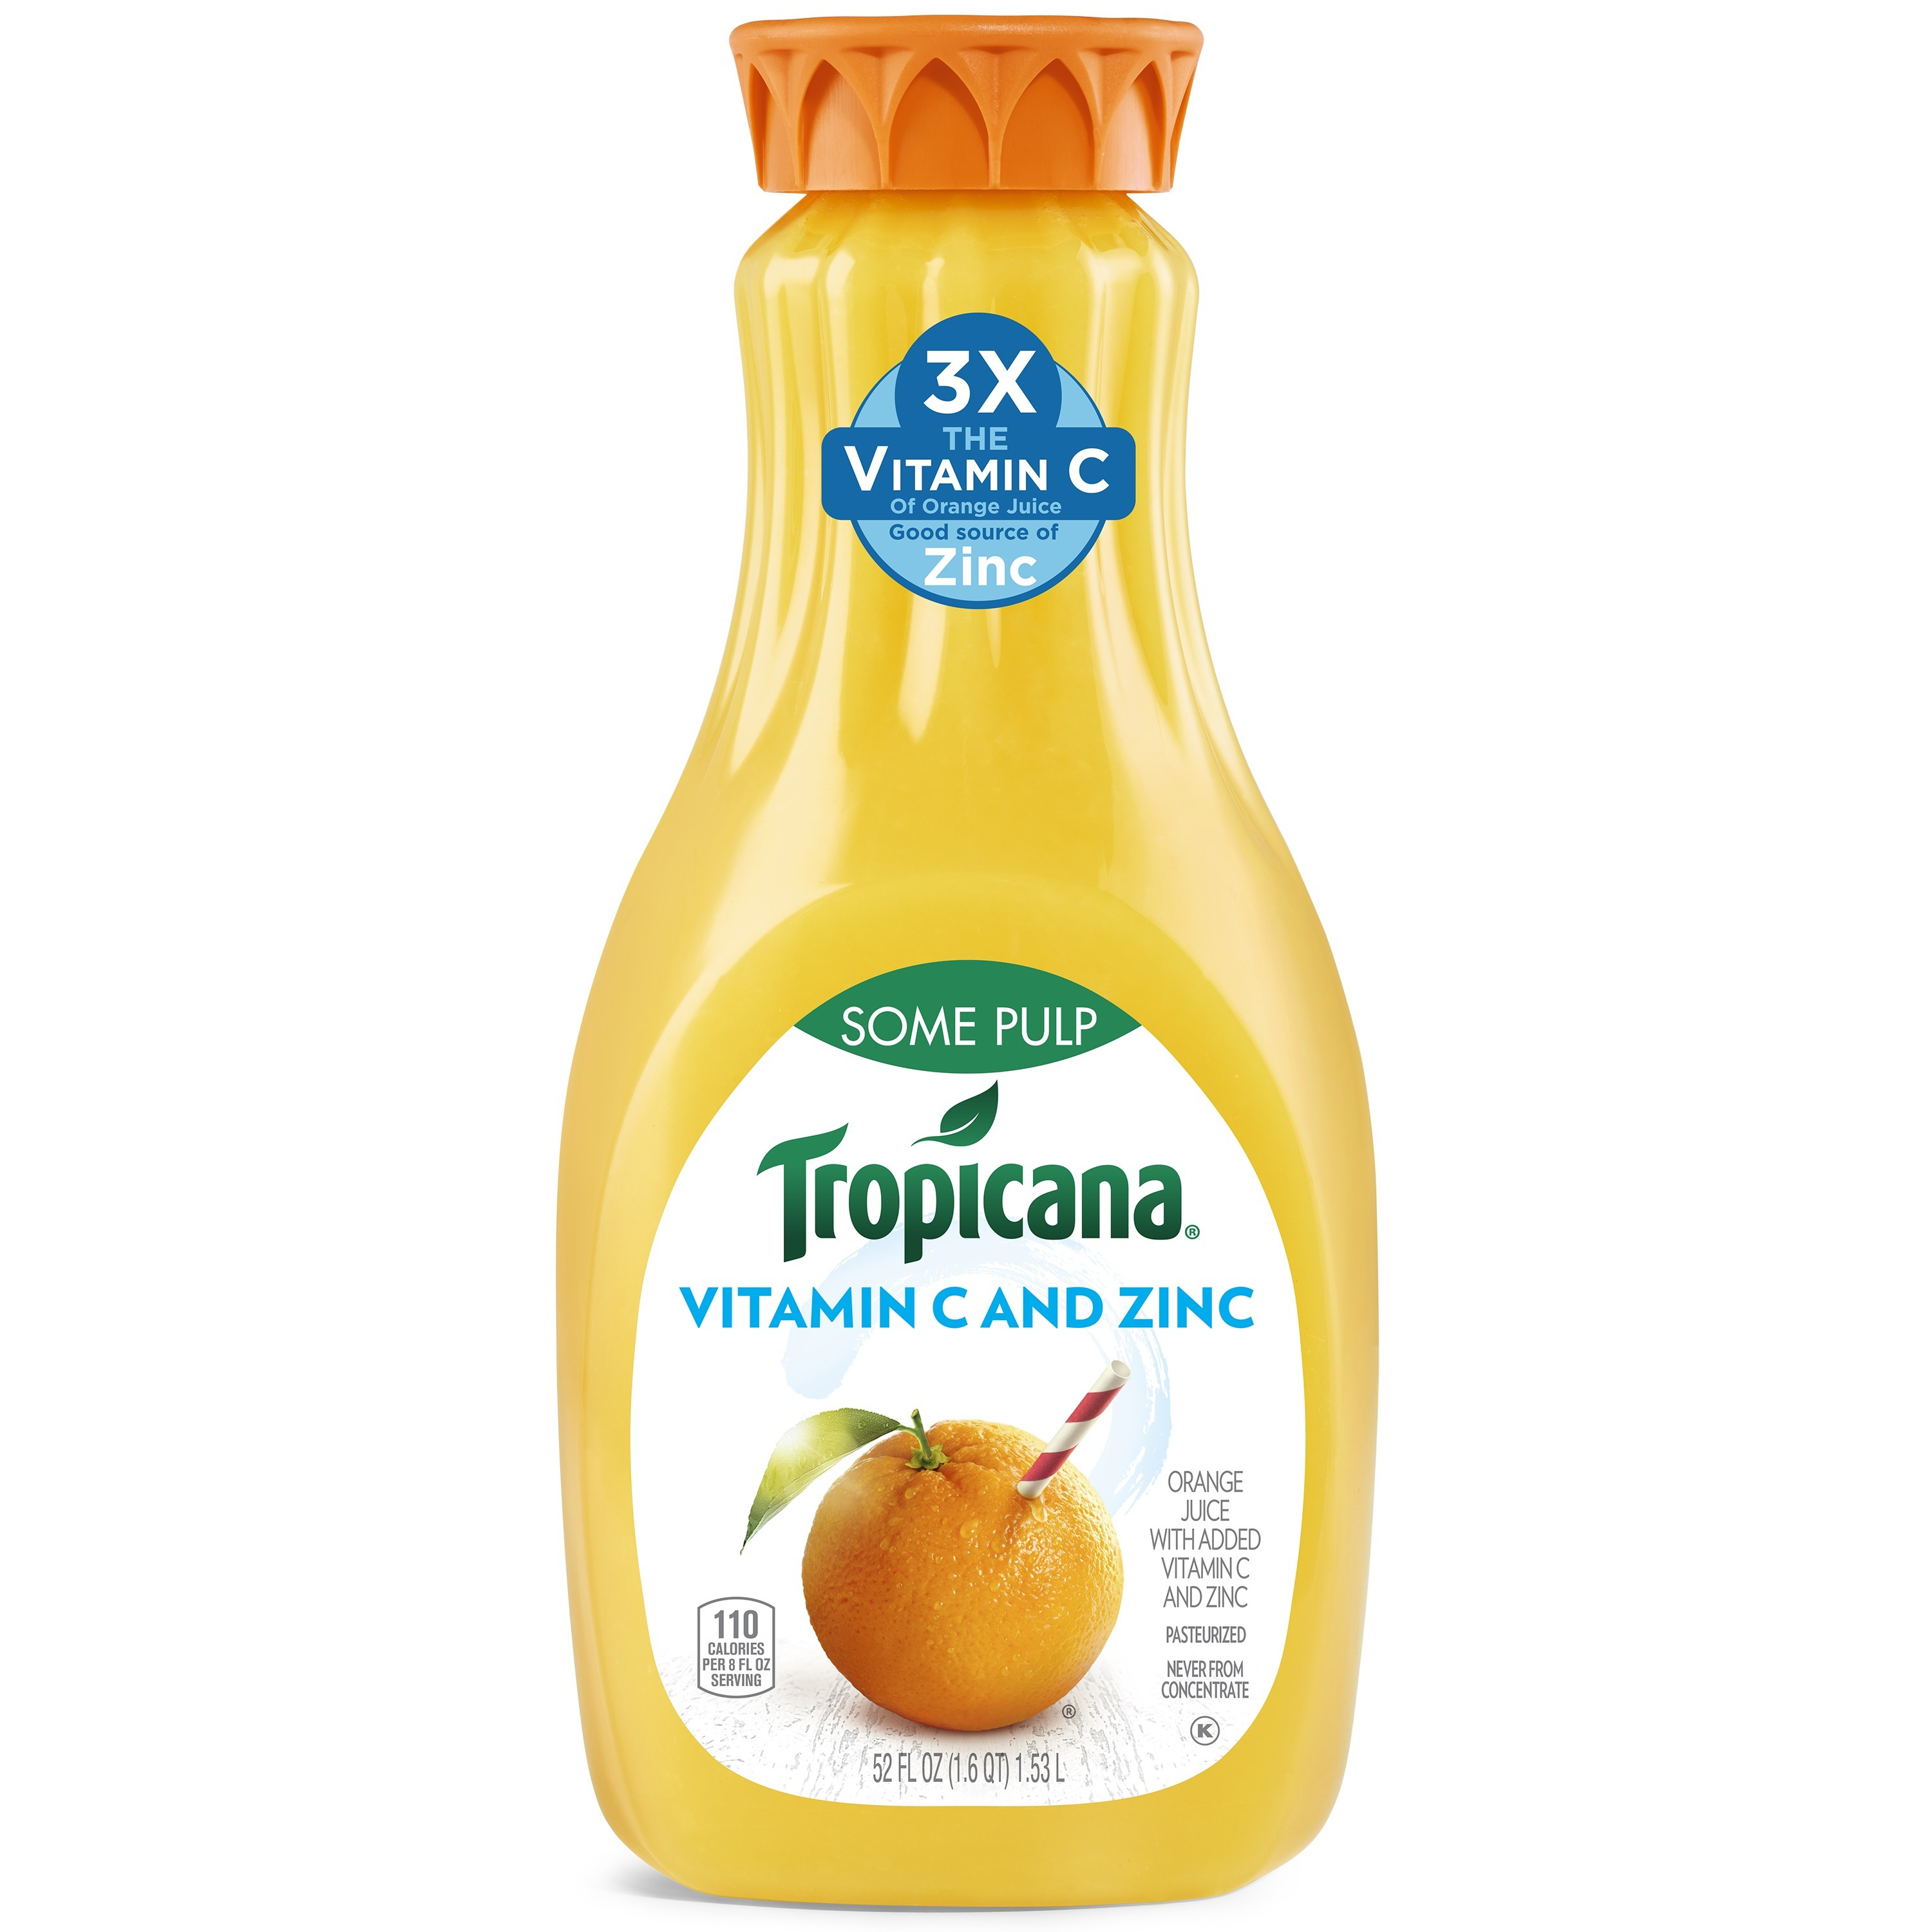 Tropicana Vitamin C and Zinc and Some Pulp Orange Juice, 52 Fl. Oz.